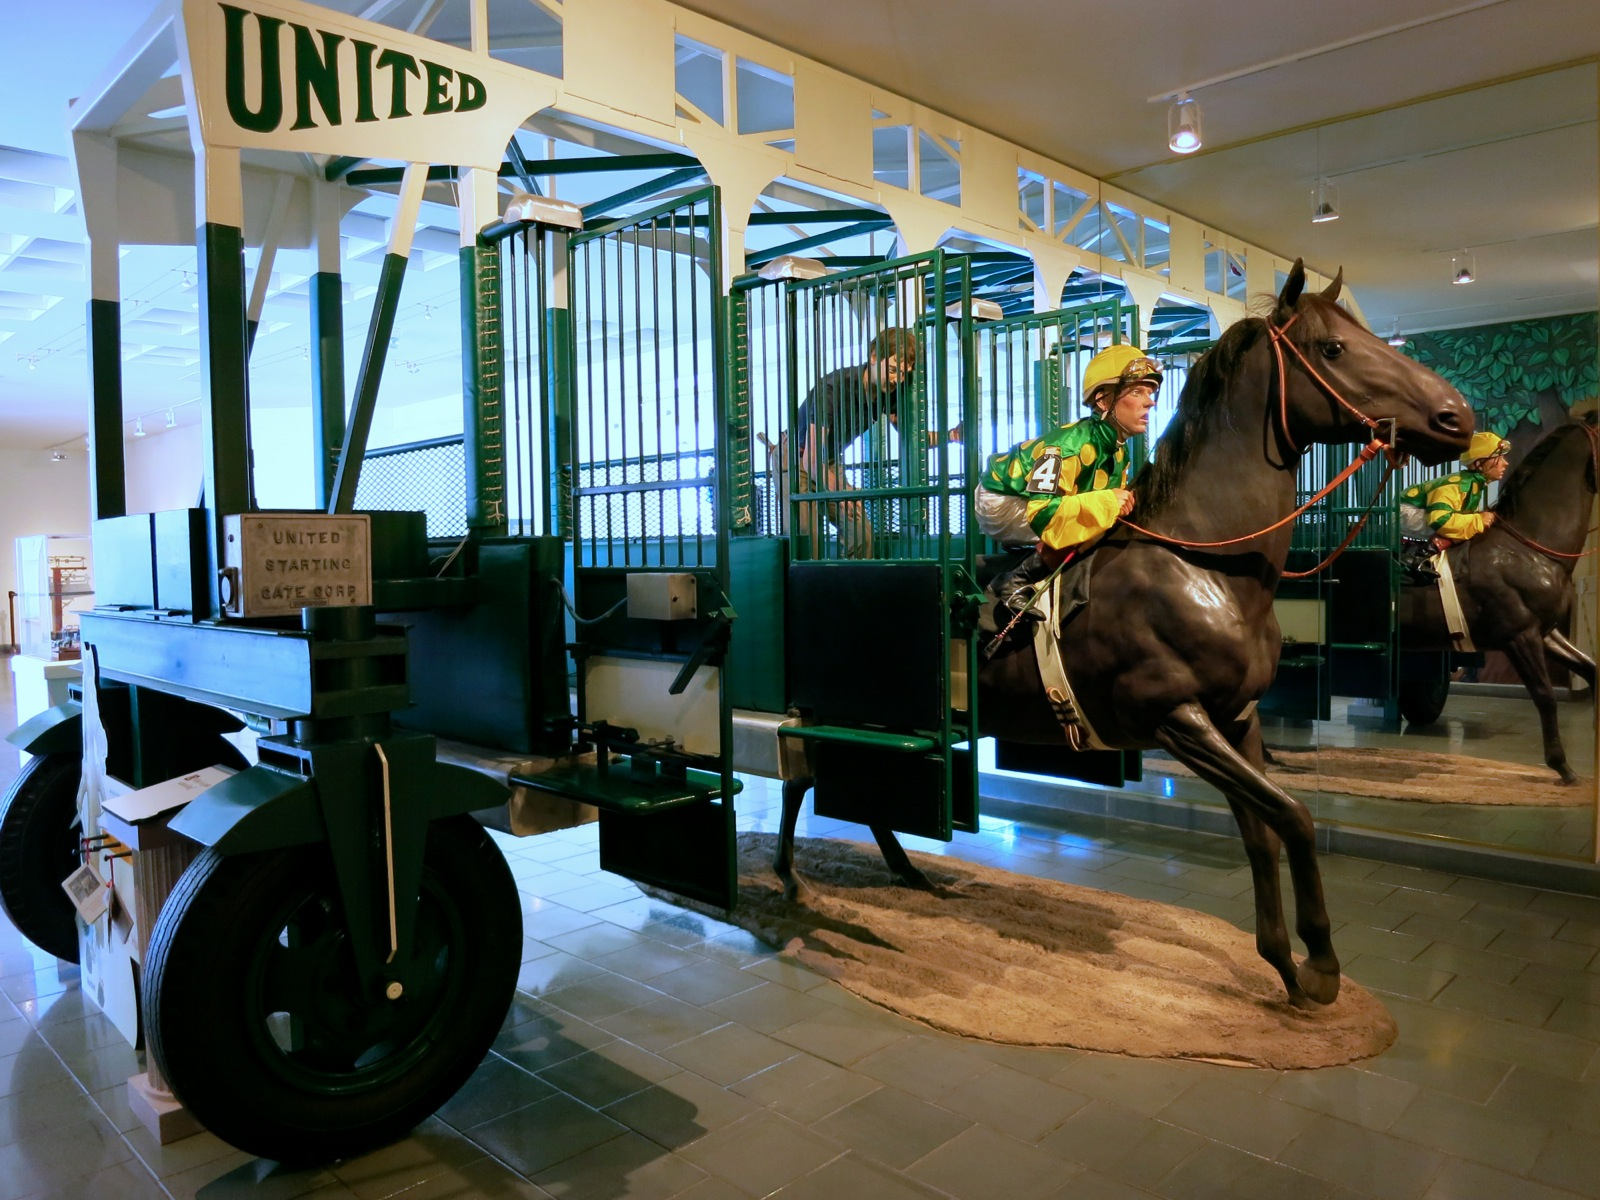 Thoroughbred Racing At Saratoga Race Course Began In 1863